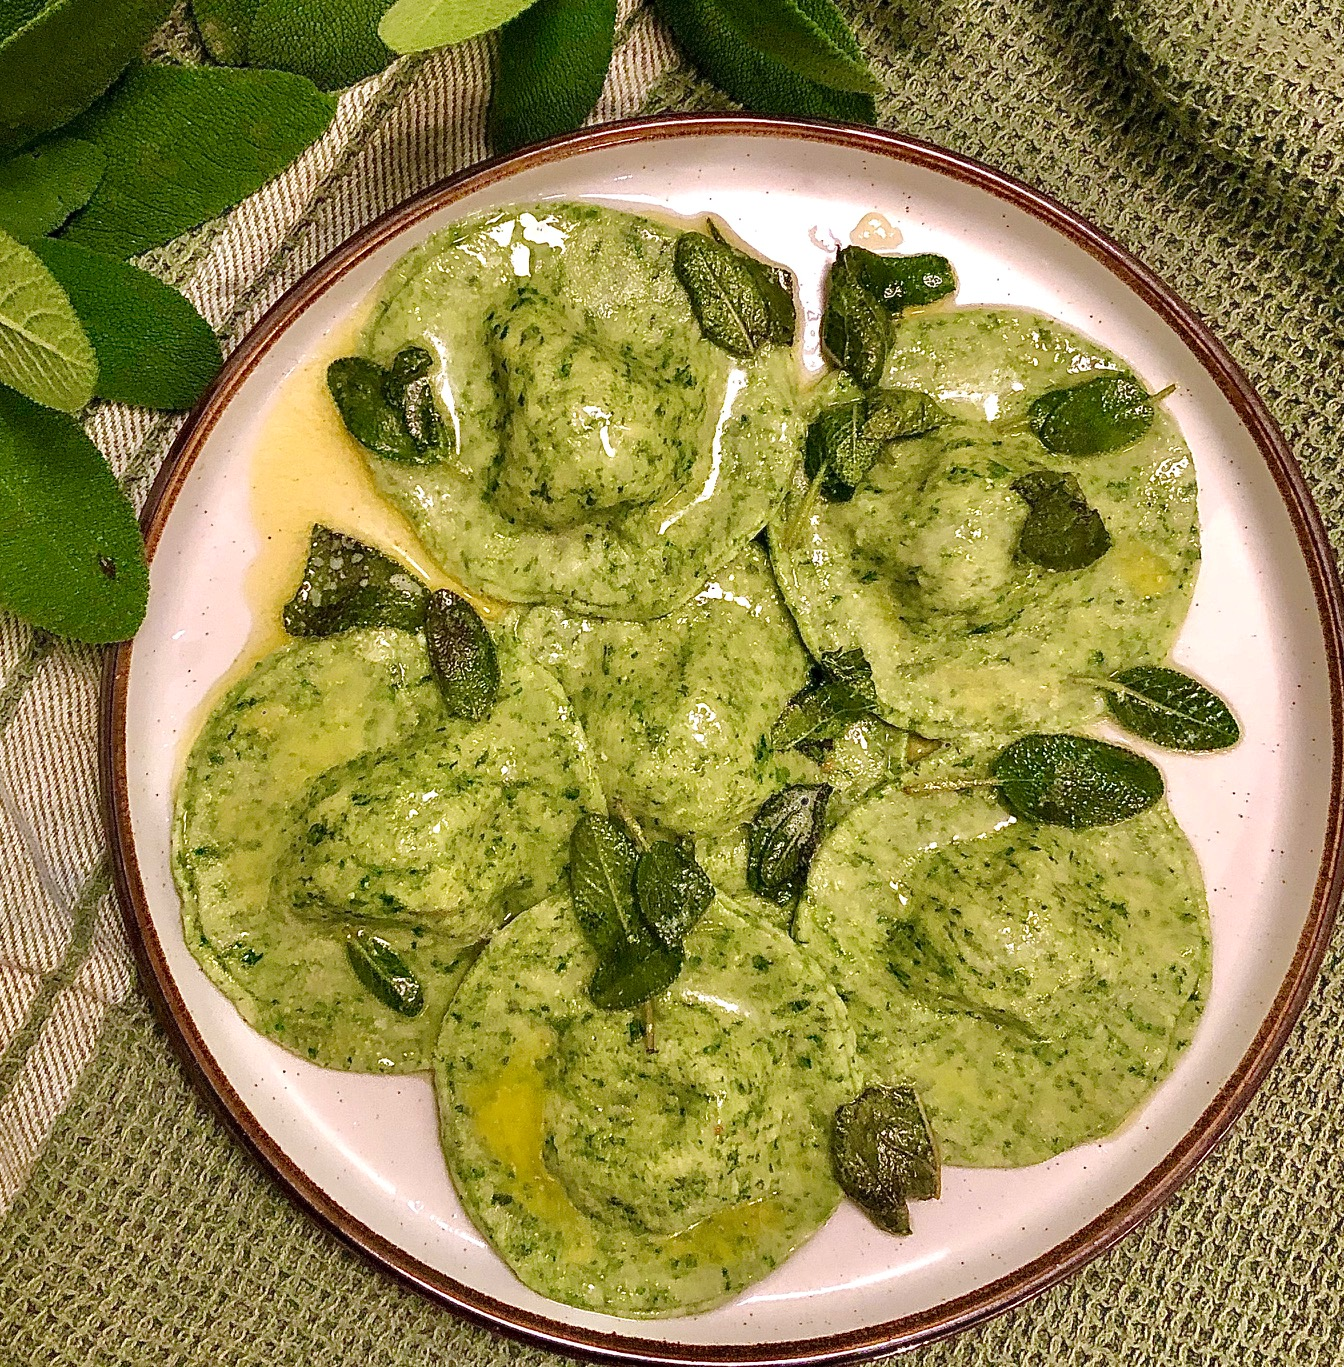 Spinach & Squash Ravioli with Sage Butter Sauce